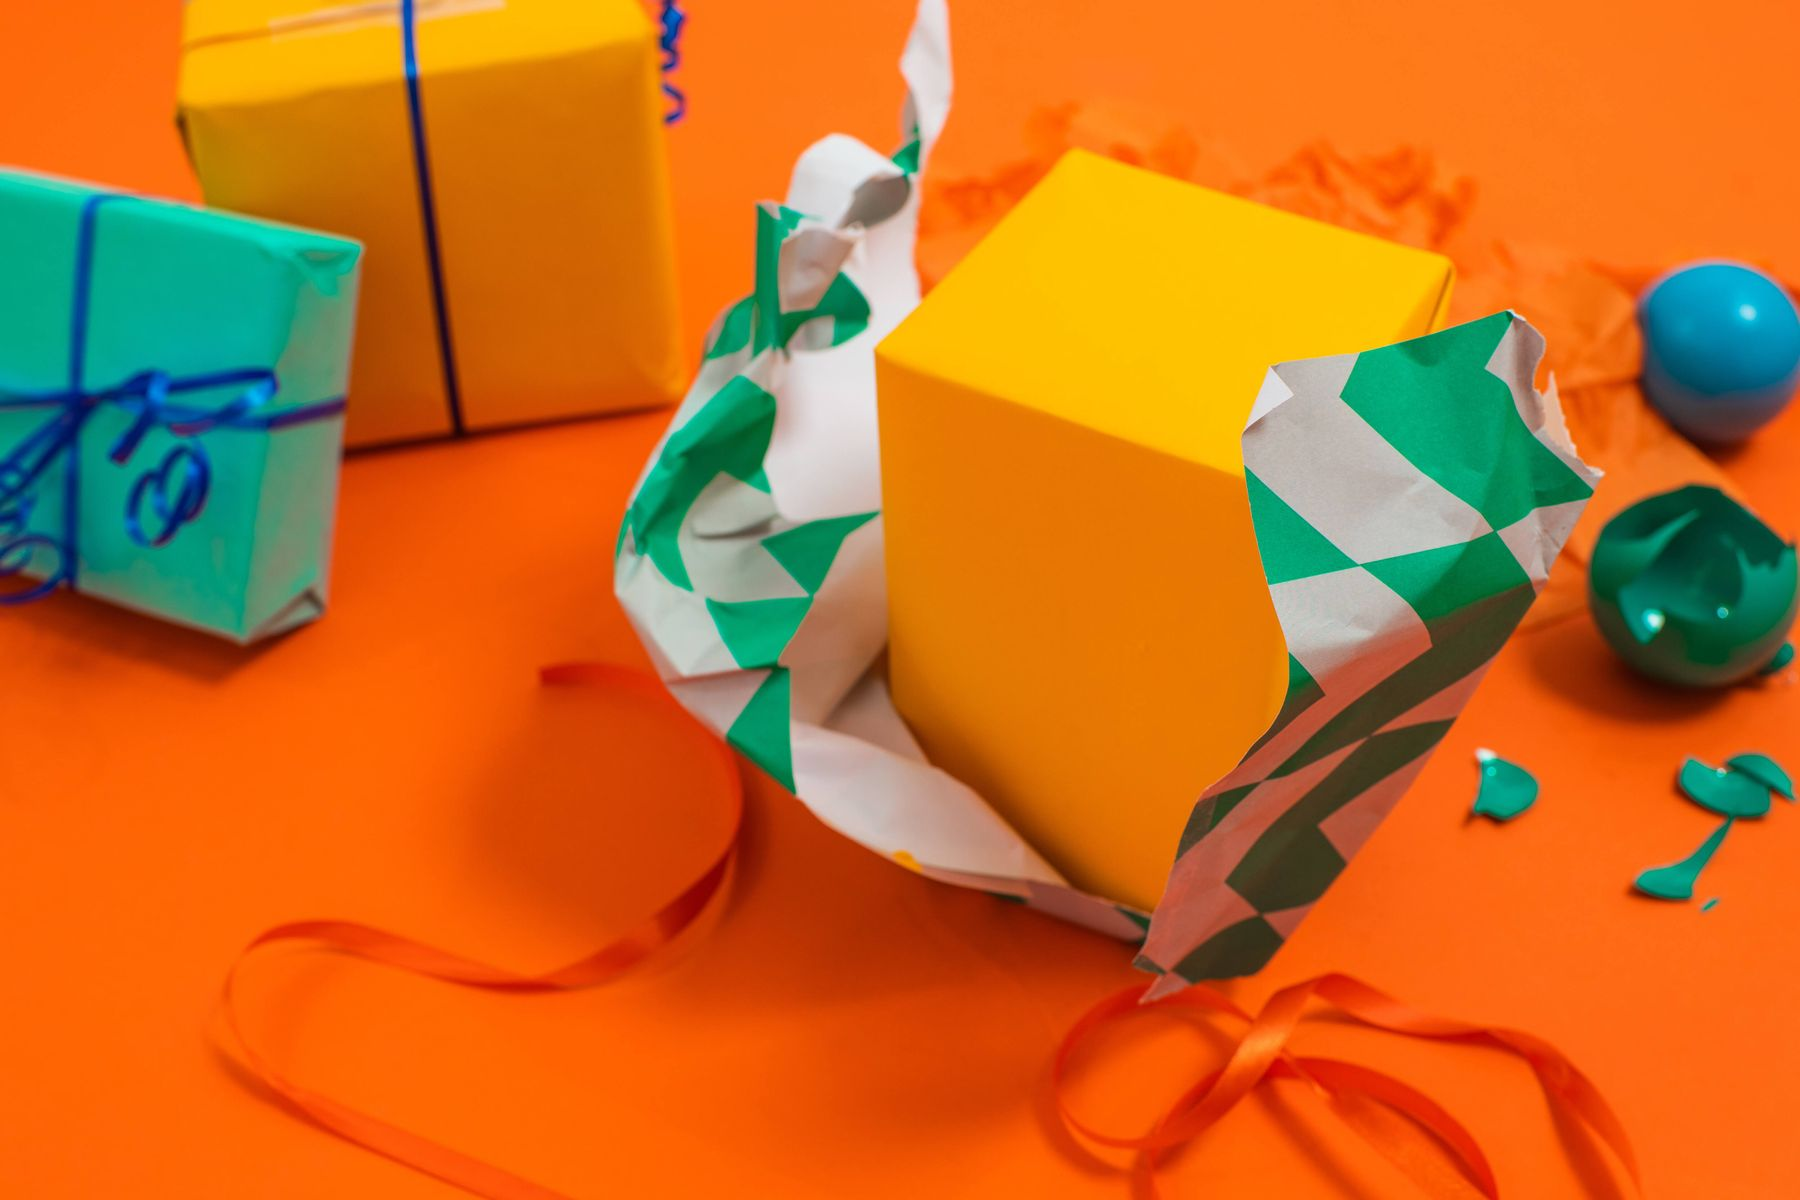 presents wrapped with ribbons and colored papers